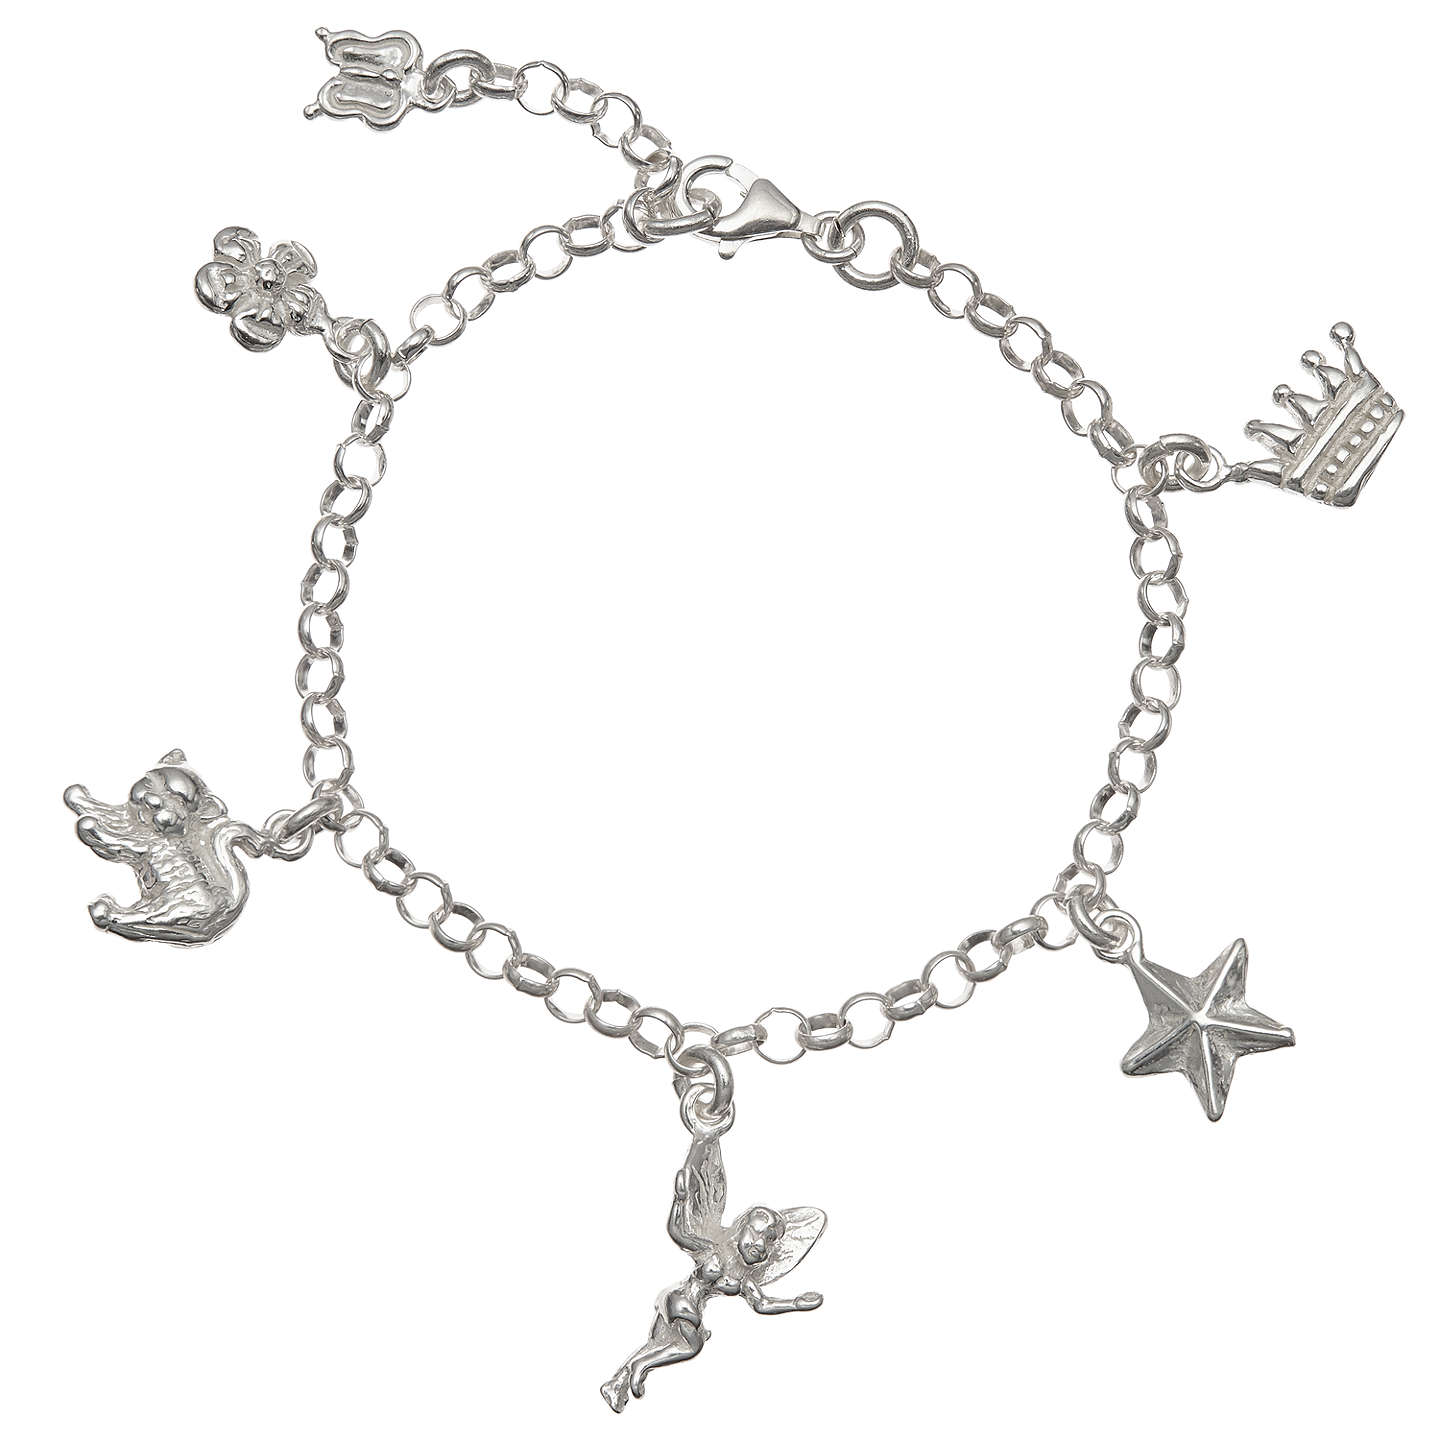 goodwins childs amp for bracelet kids silver image diamond from d leather